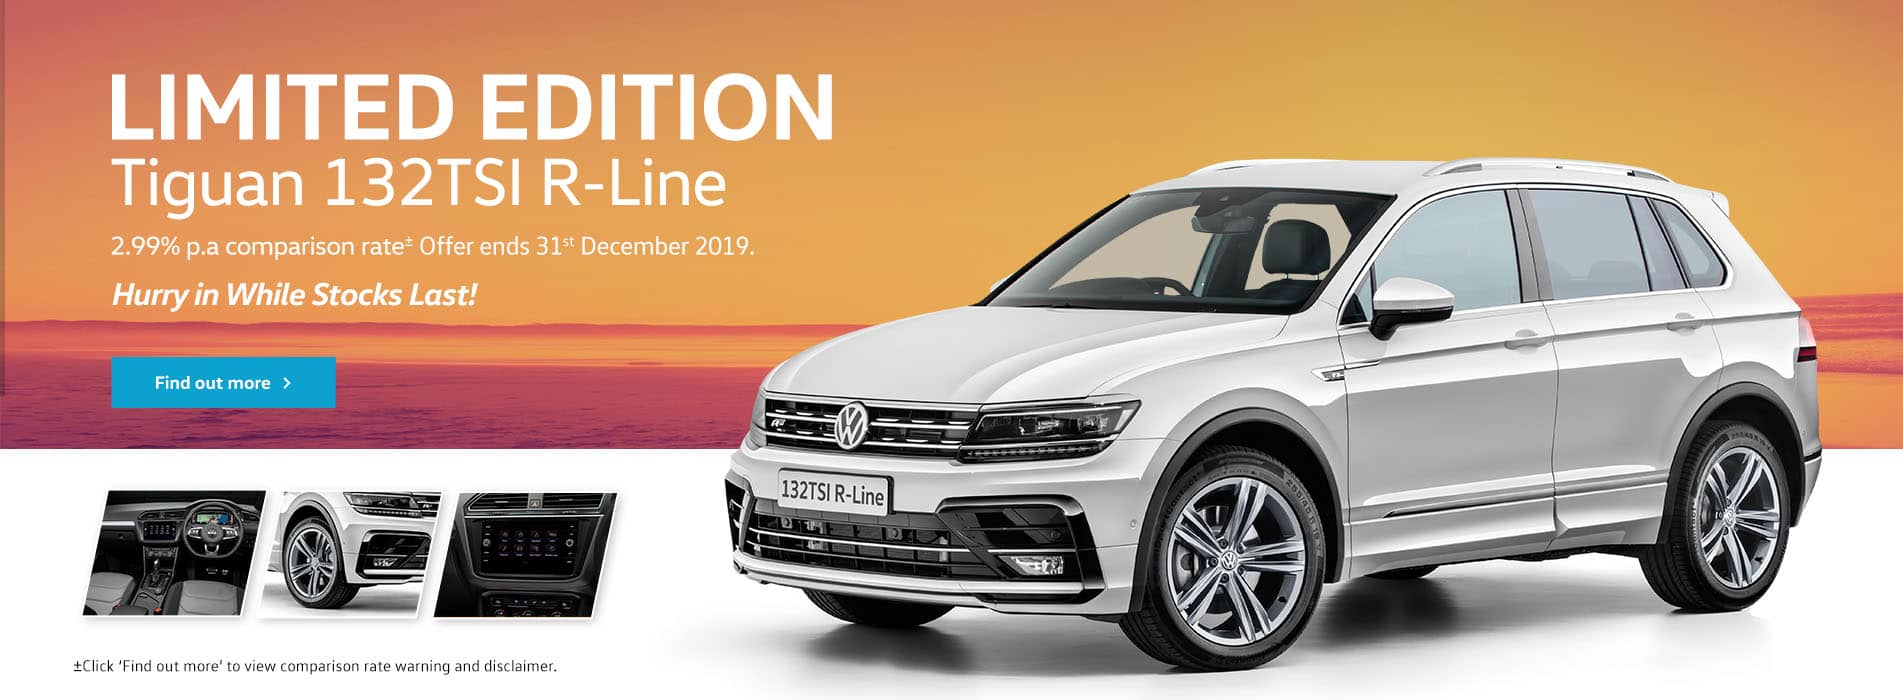 Tiguan 132 Limited Edition with Finance Offer